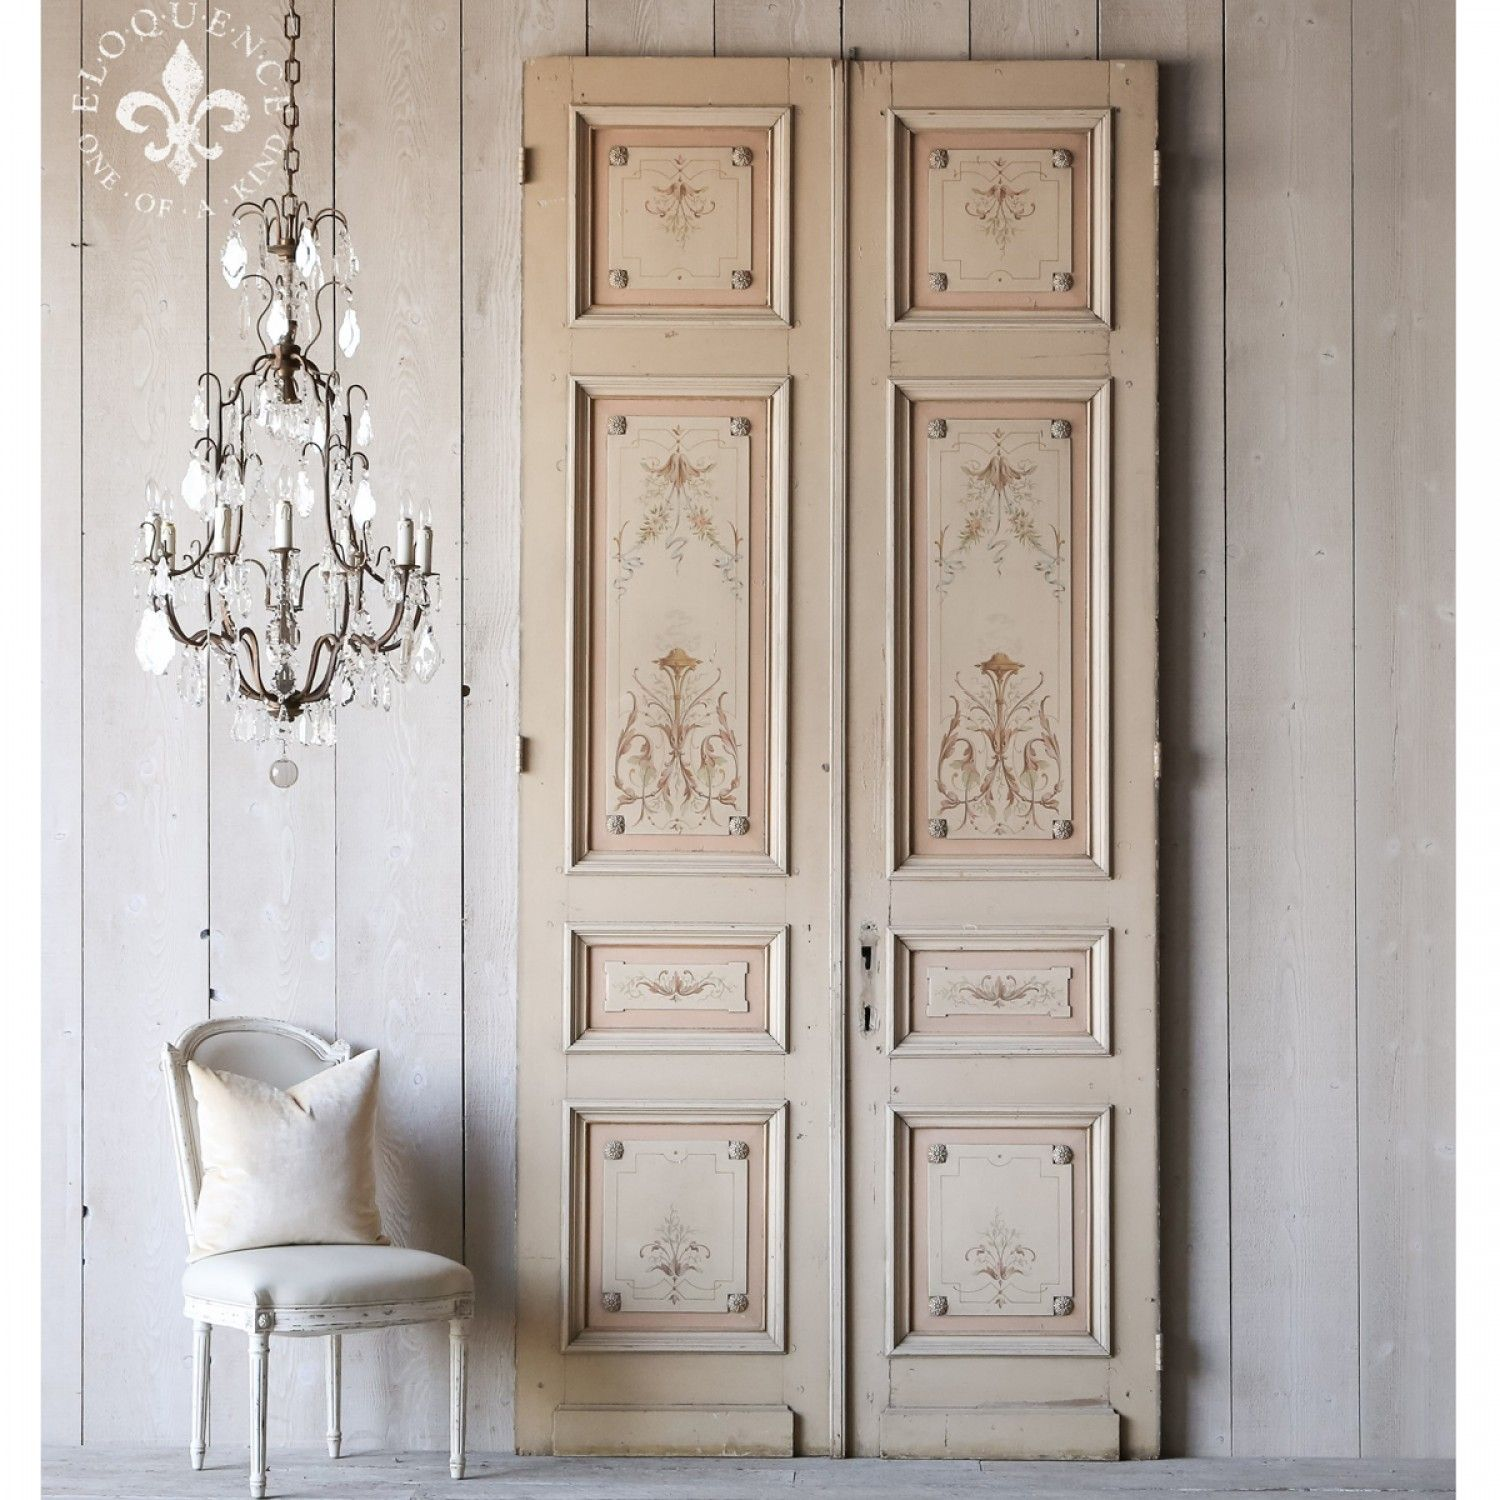 Home Incredible Pair Of Hand Painted French Interior Antique Doors Antique  Interior French Doors - Home Incredible Pair Of Hand Painted French Interior Antique Doors